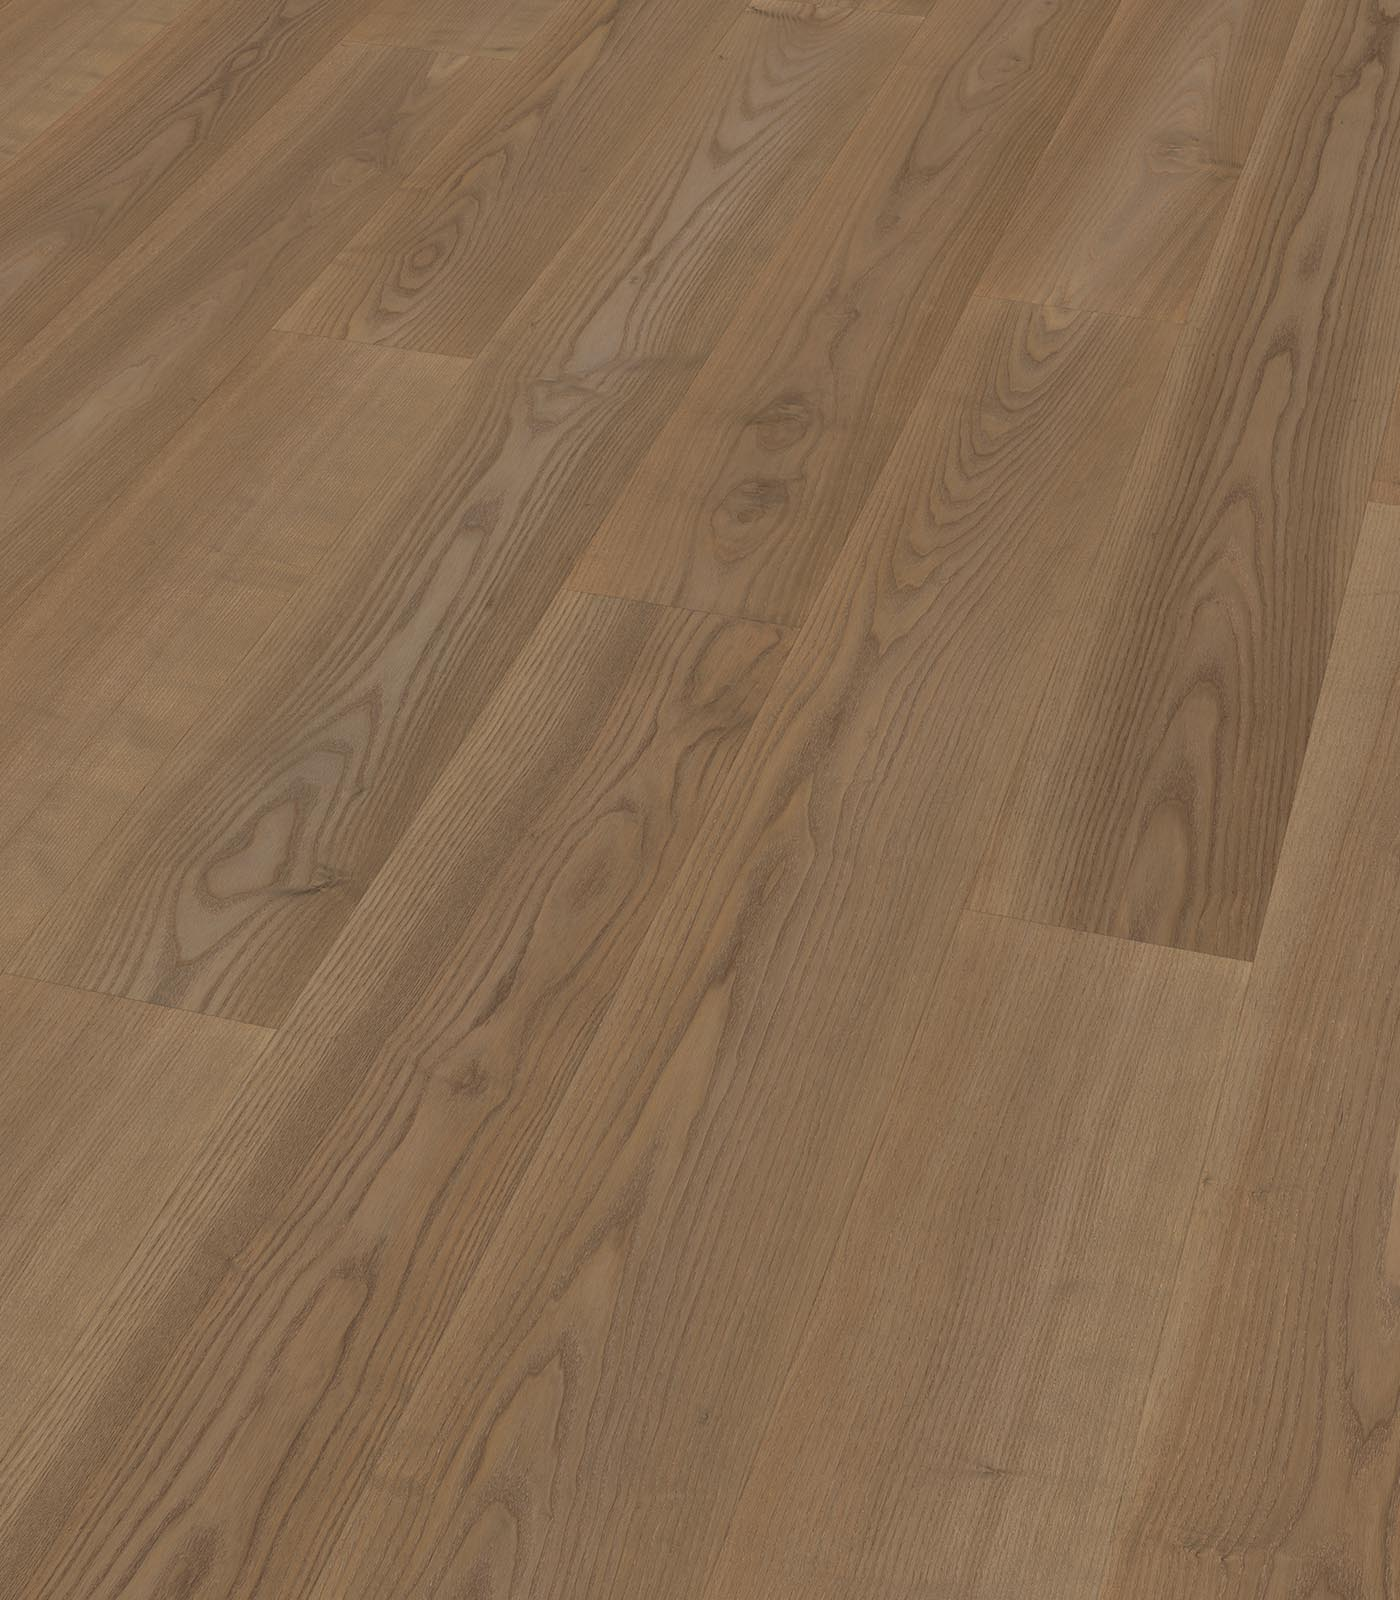 Marseille-After Oak Collection-European Ash Floors - angle